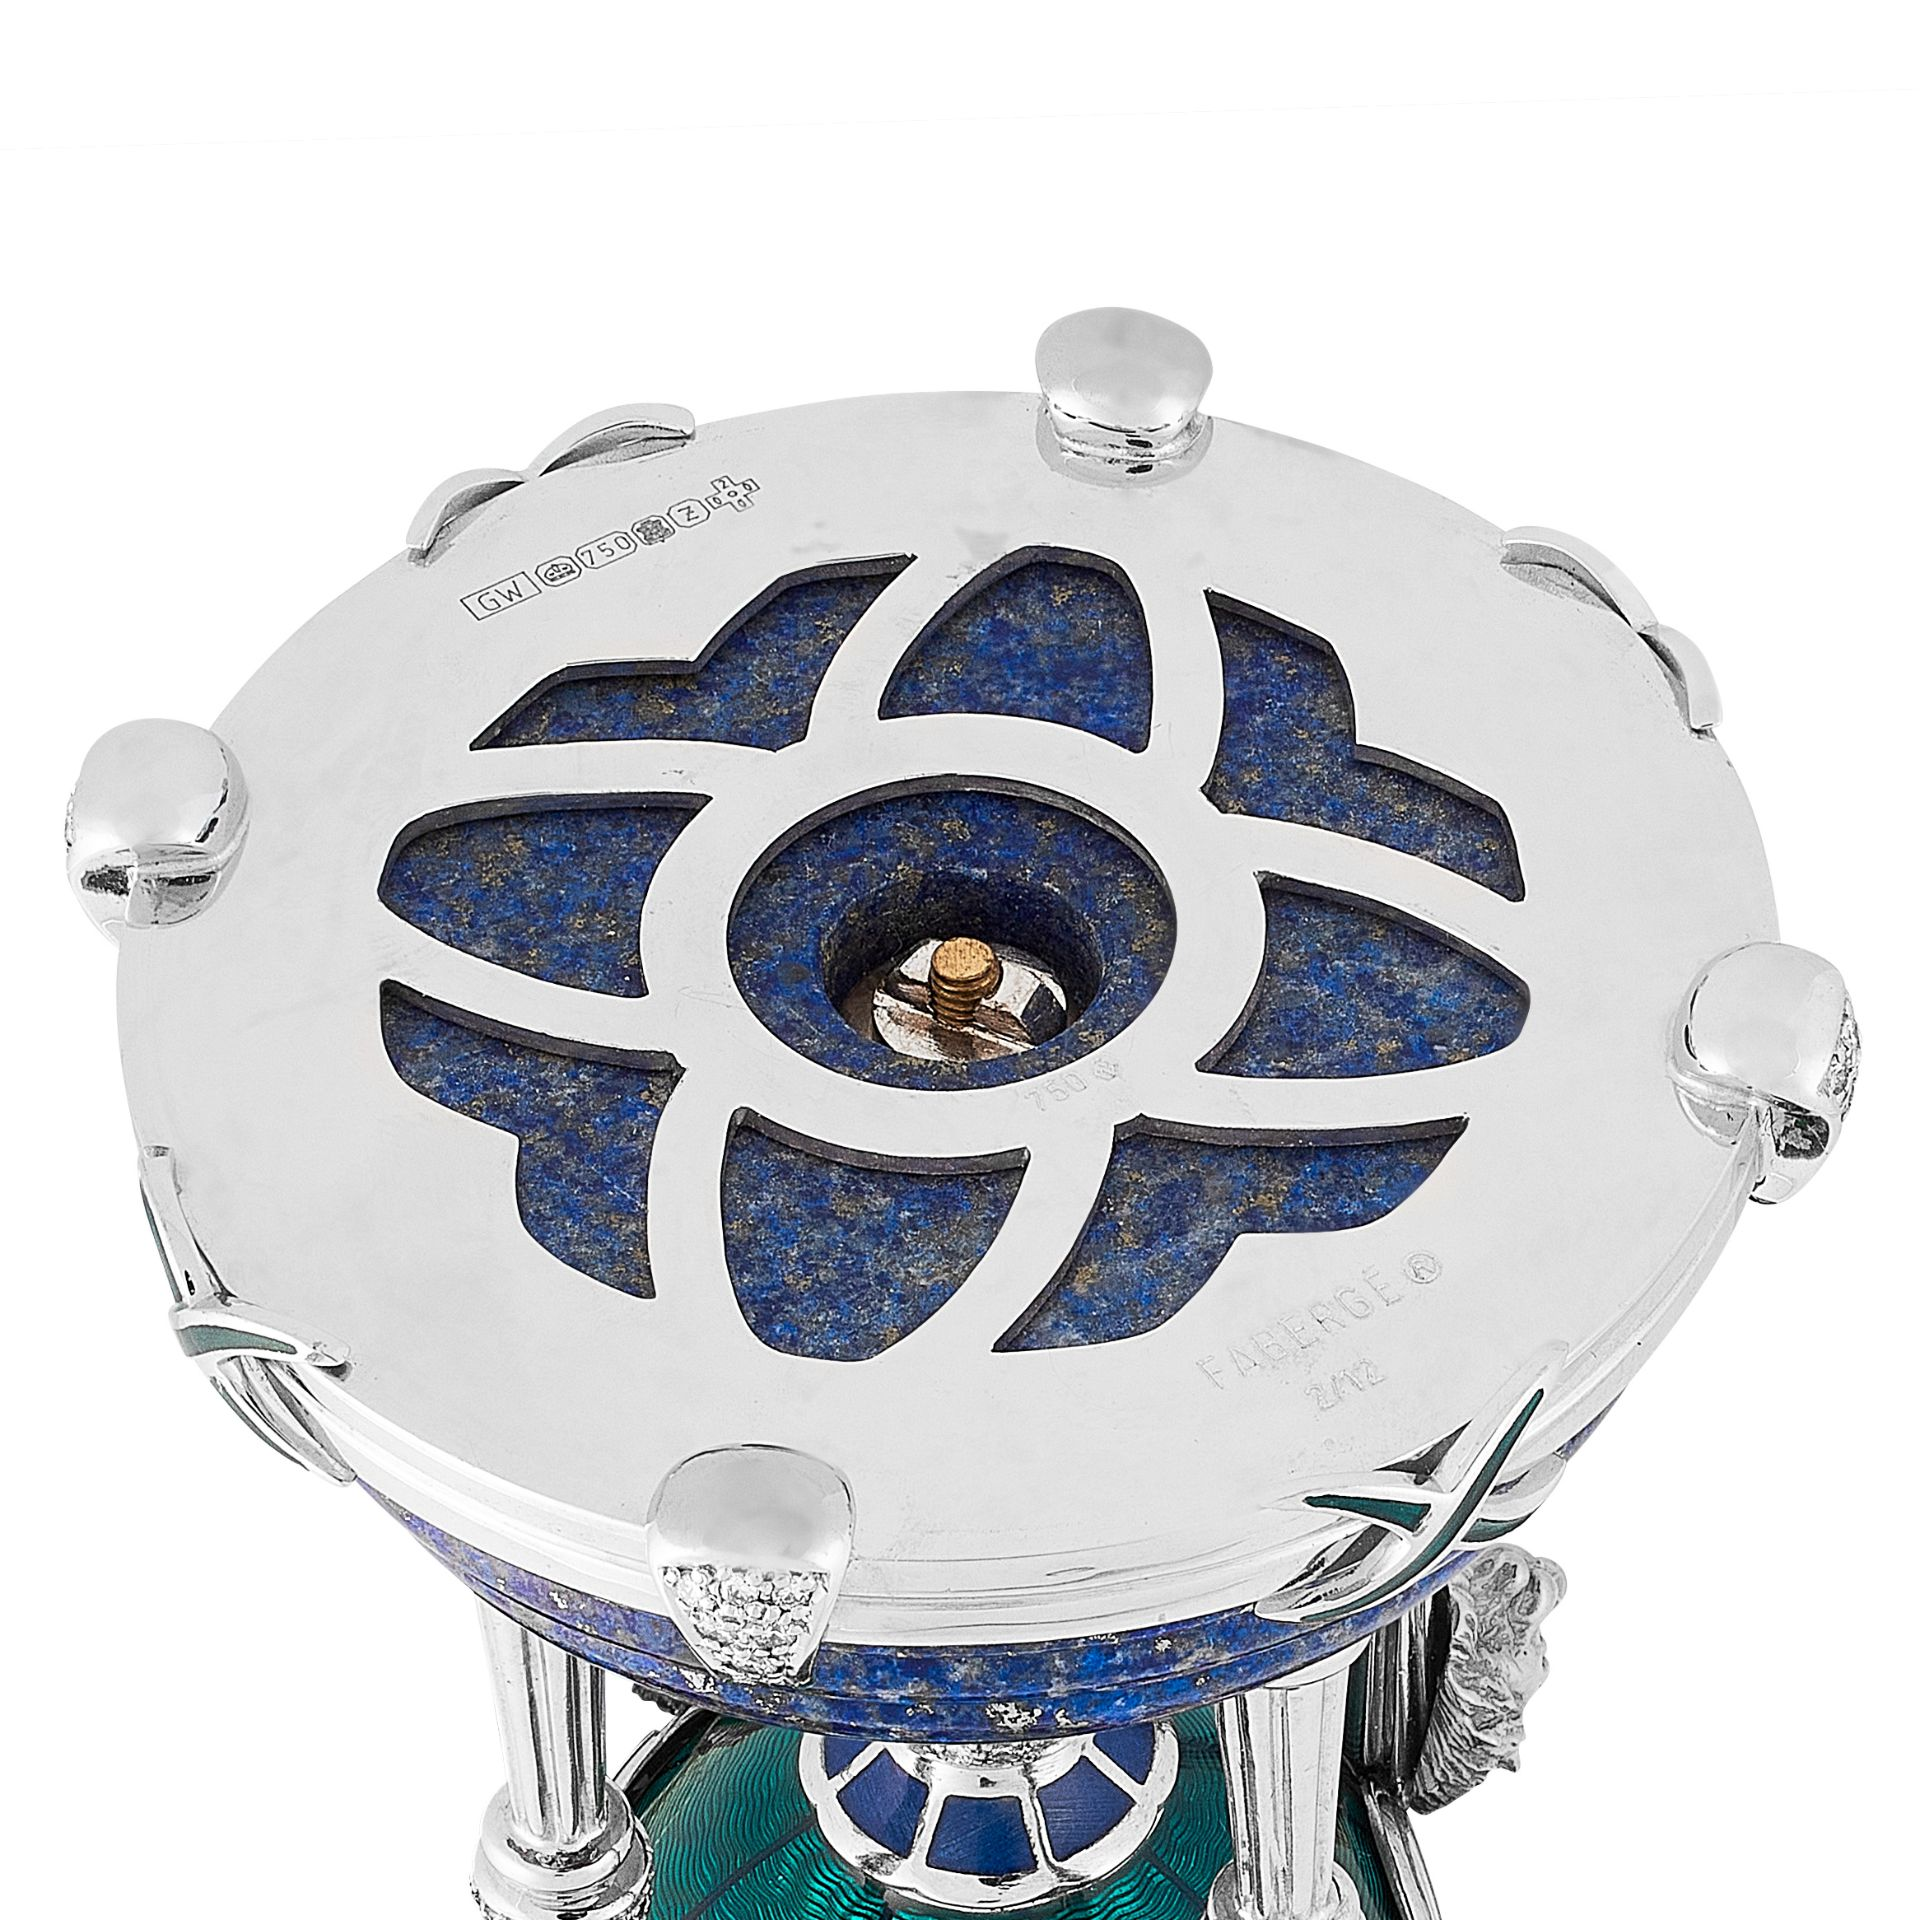 Los 54 - A HARDSTONE, DIAMOND, SAPPHIRE AND ENAMEL EGG, VICTOR MAYER FOR FABERGE 2000 in 18ct white gold, the